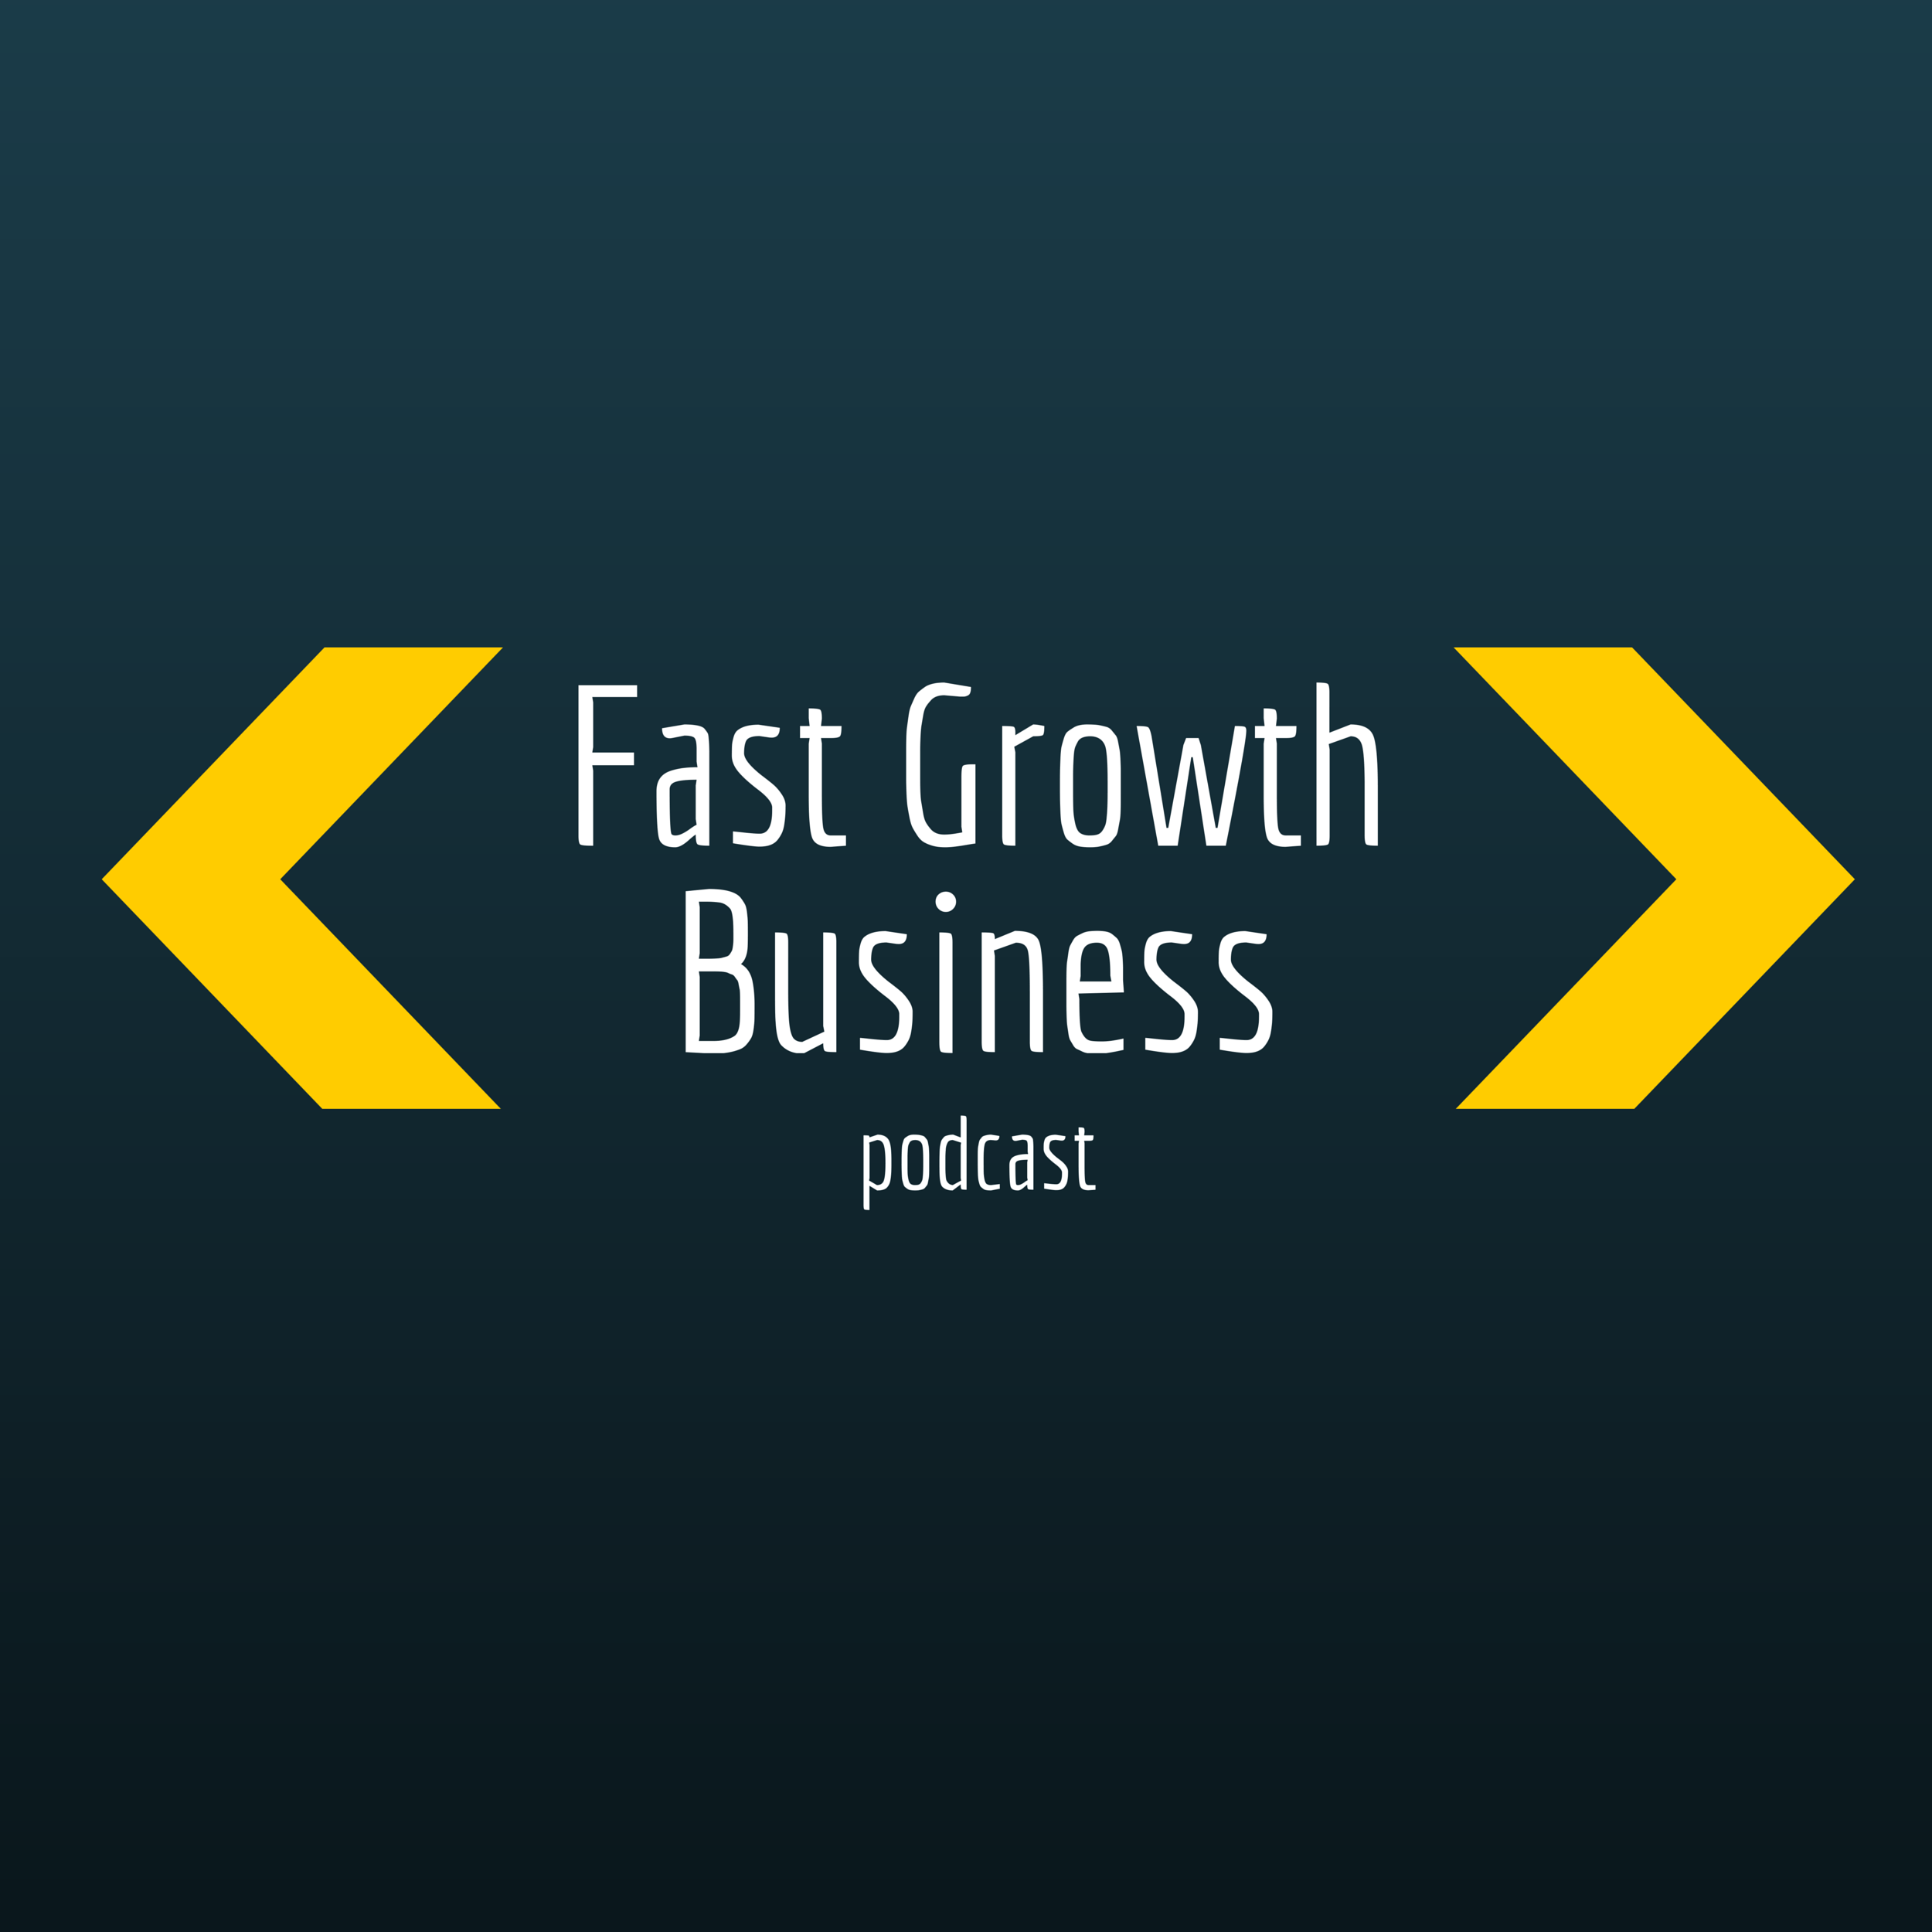 Fast Growth Business